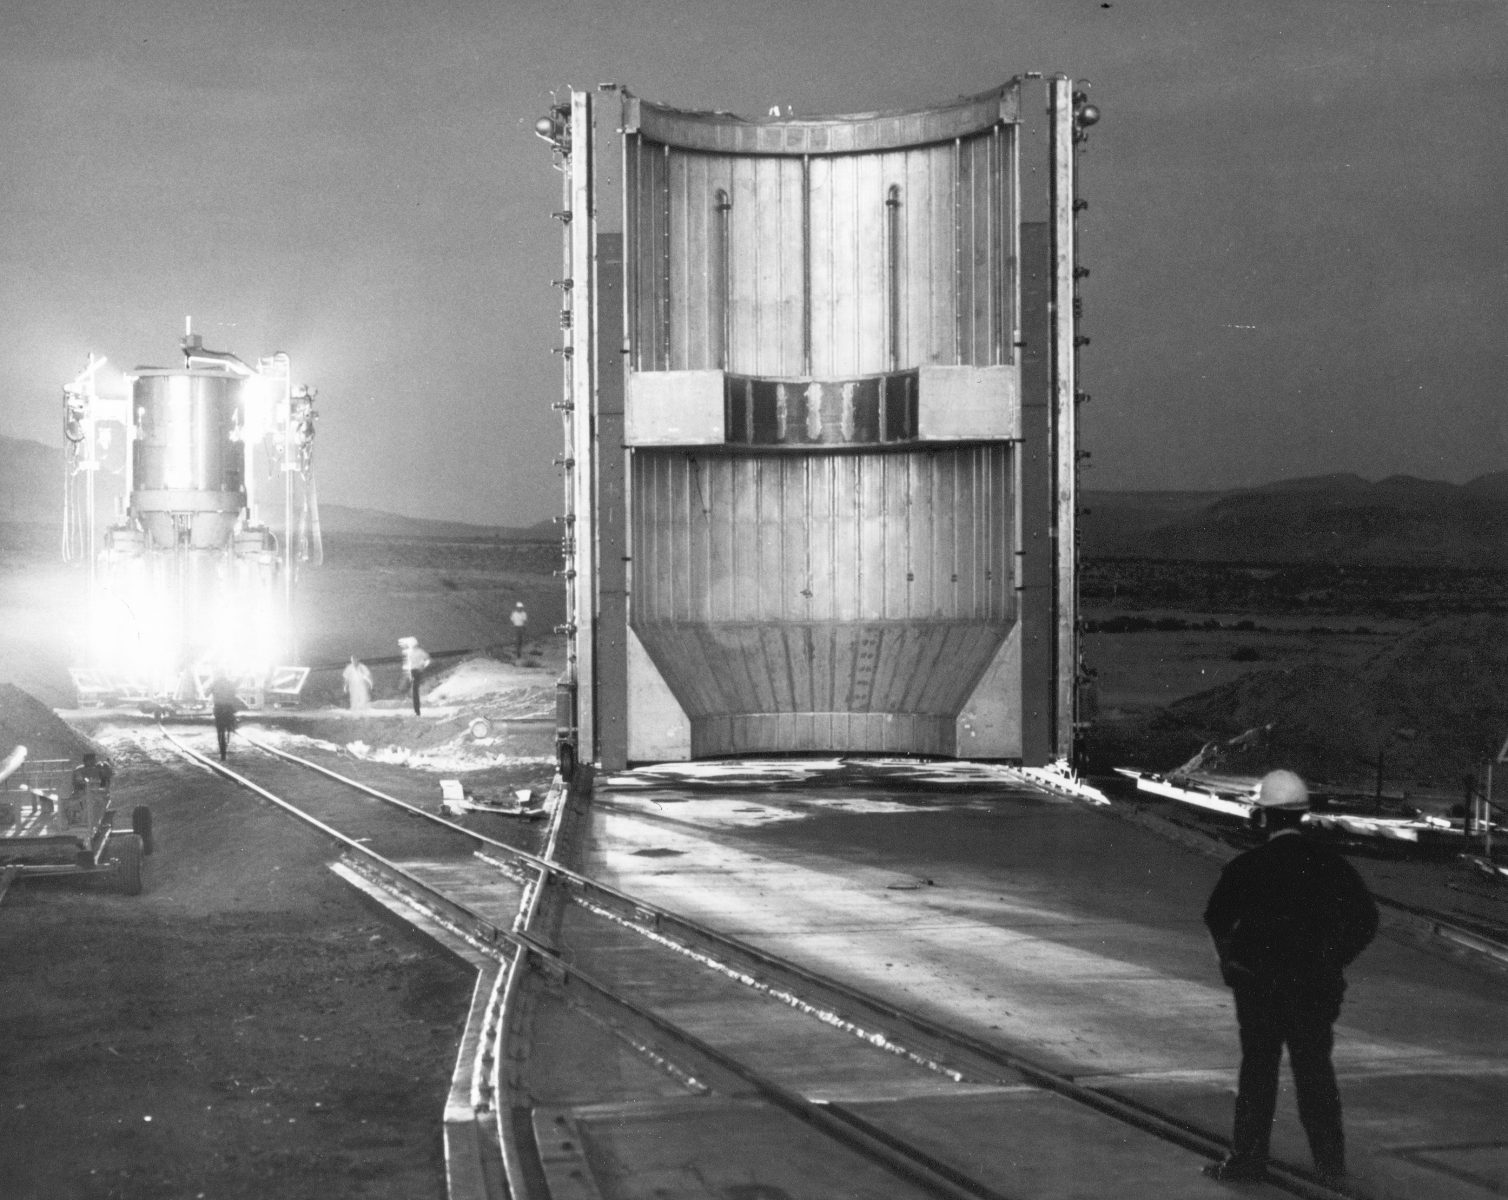 nuclear_rocket_engine_being_transported_to_test_stand_-_gpn-2002-000143